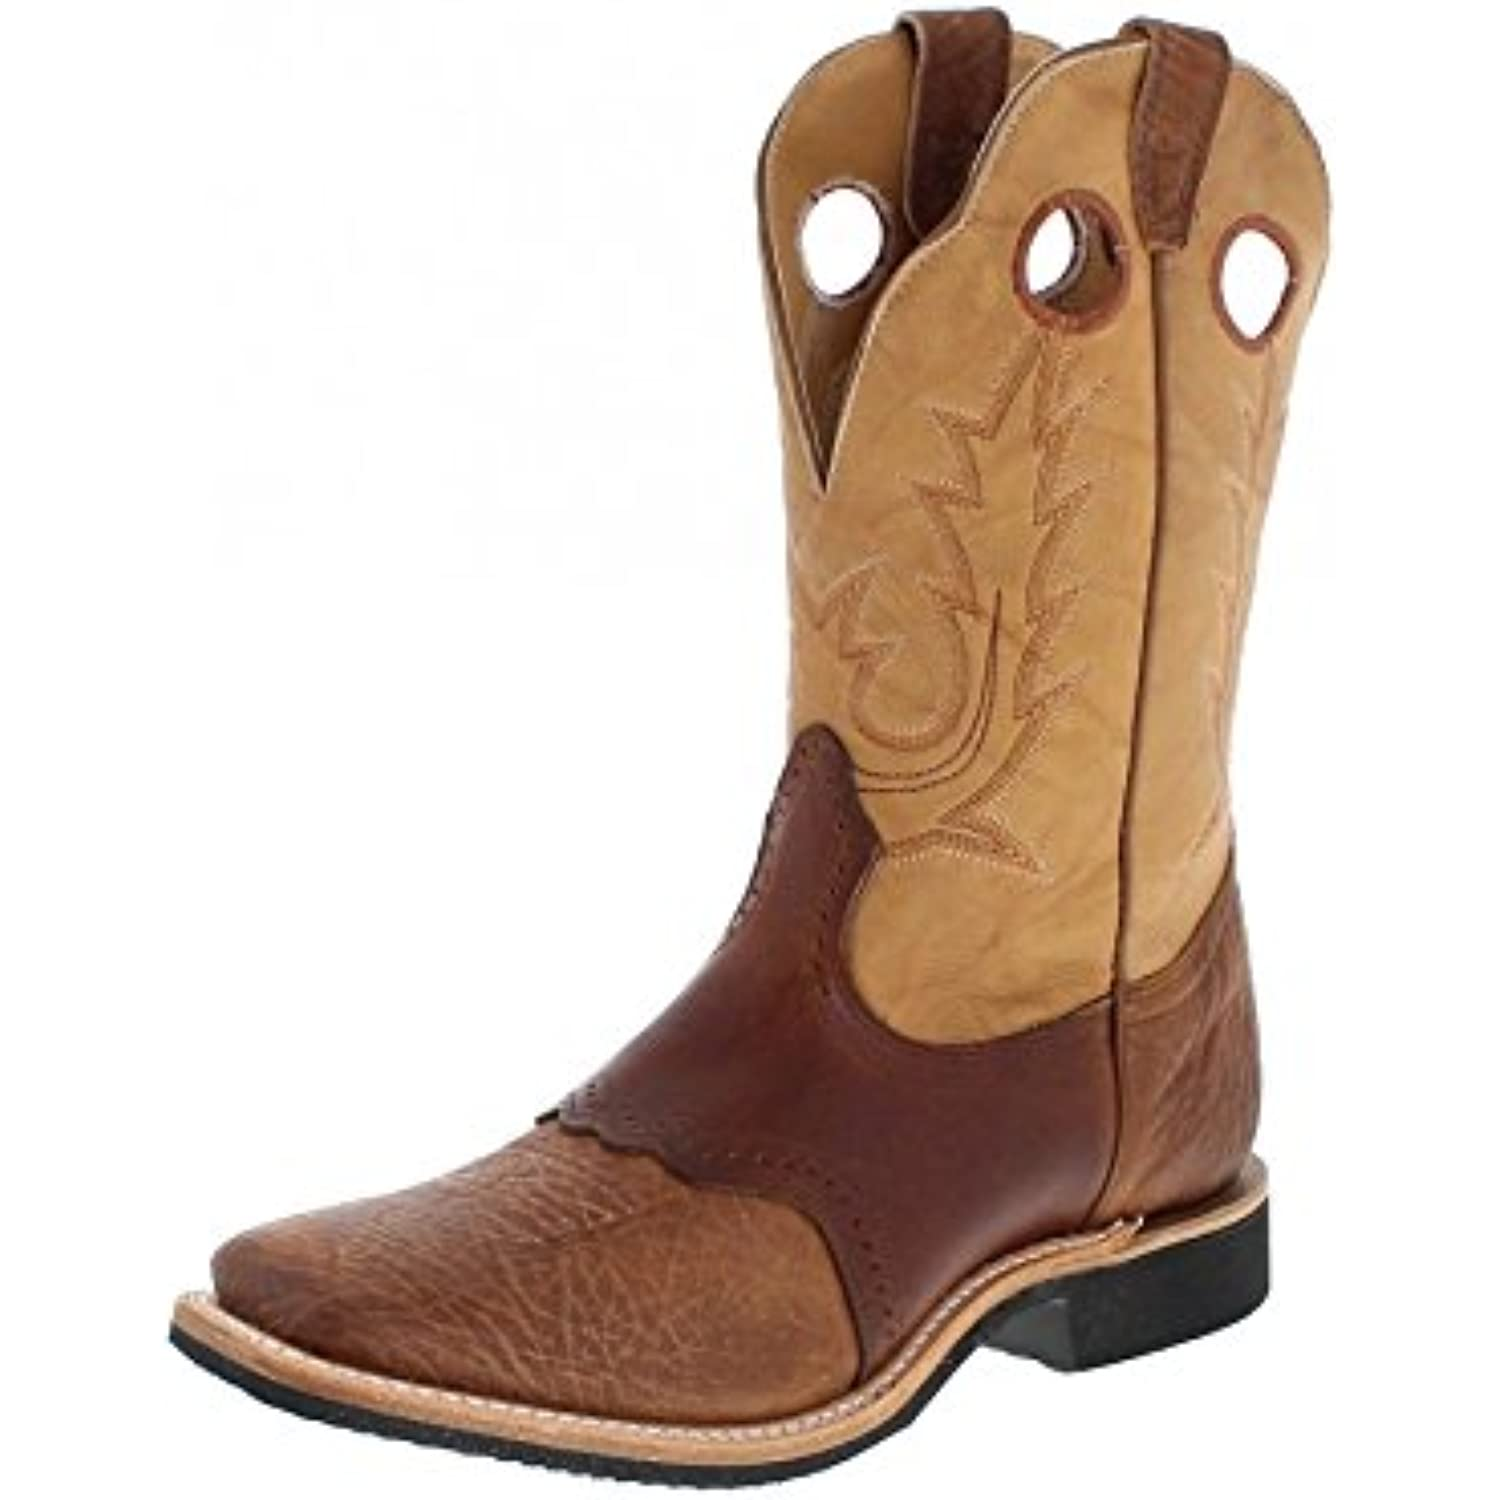 Bottes américaines - Bottes Cowboy BO-5263-EEE (Pied (Pied (Pied Fort) - Homme - Cuir - Marron - B01GIQ68I2 - 33e4ae